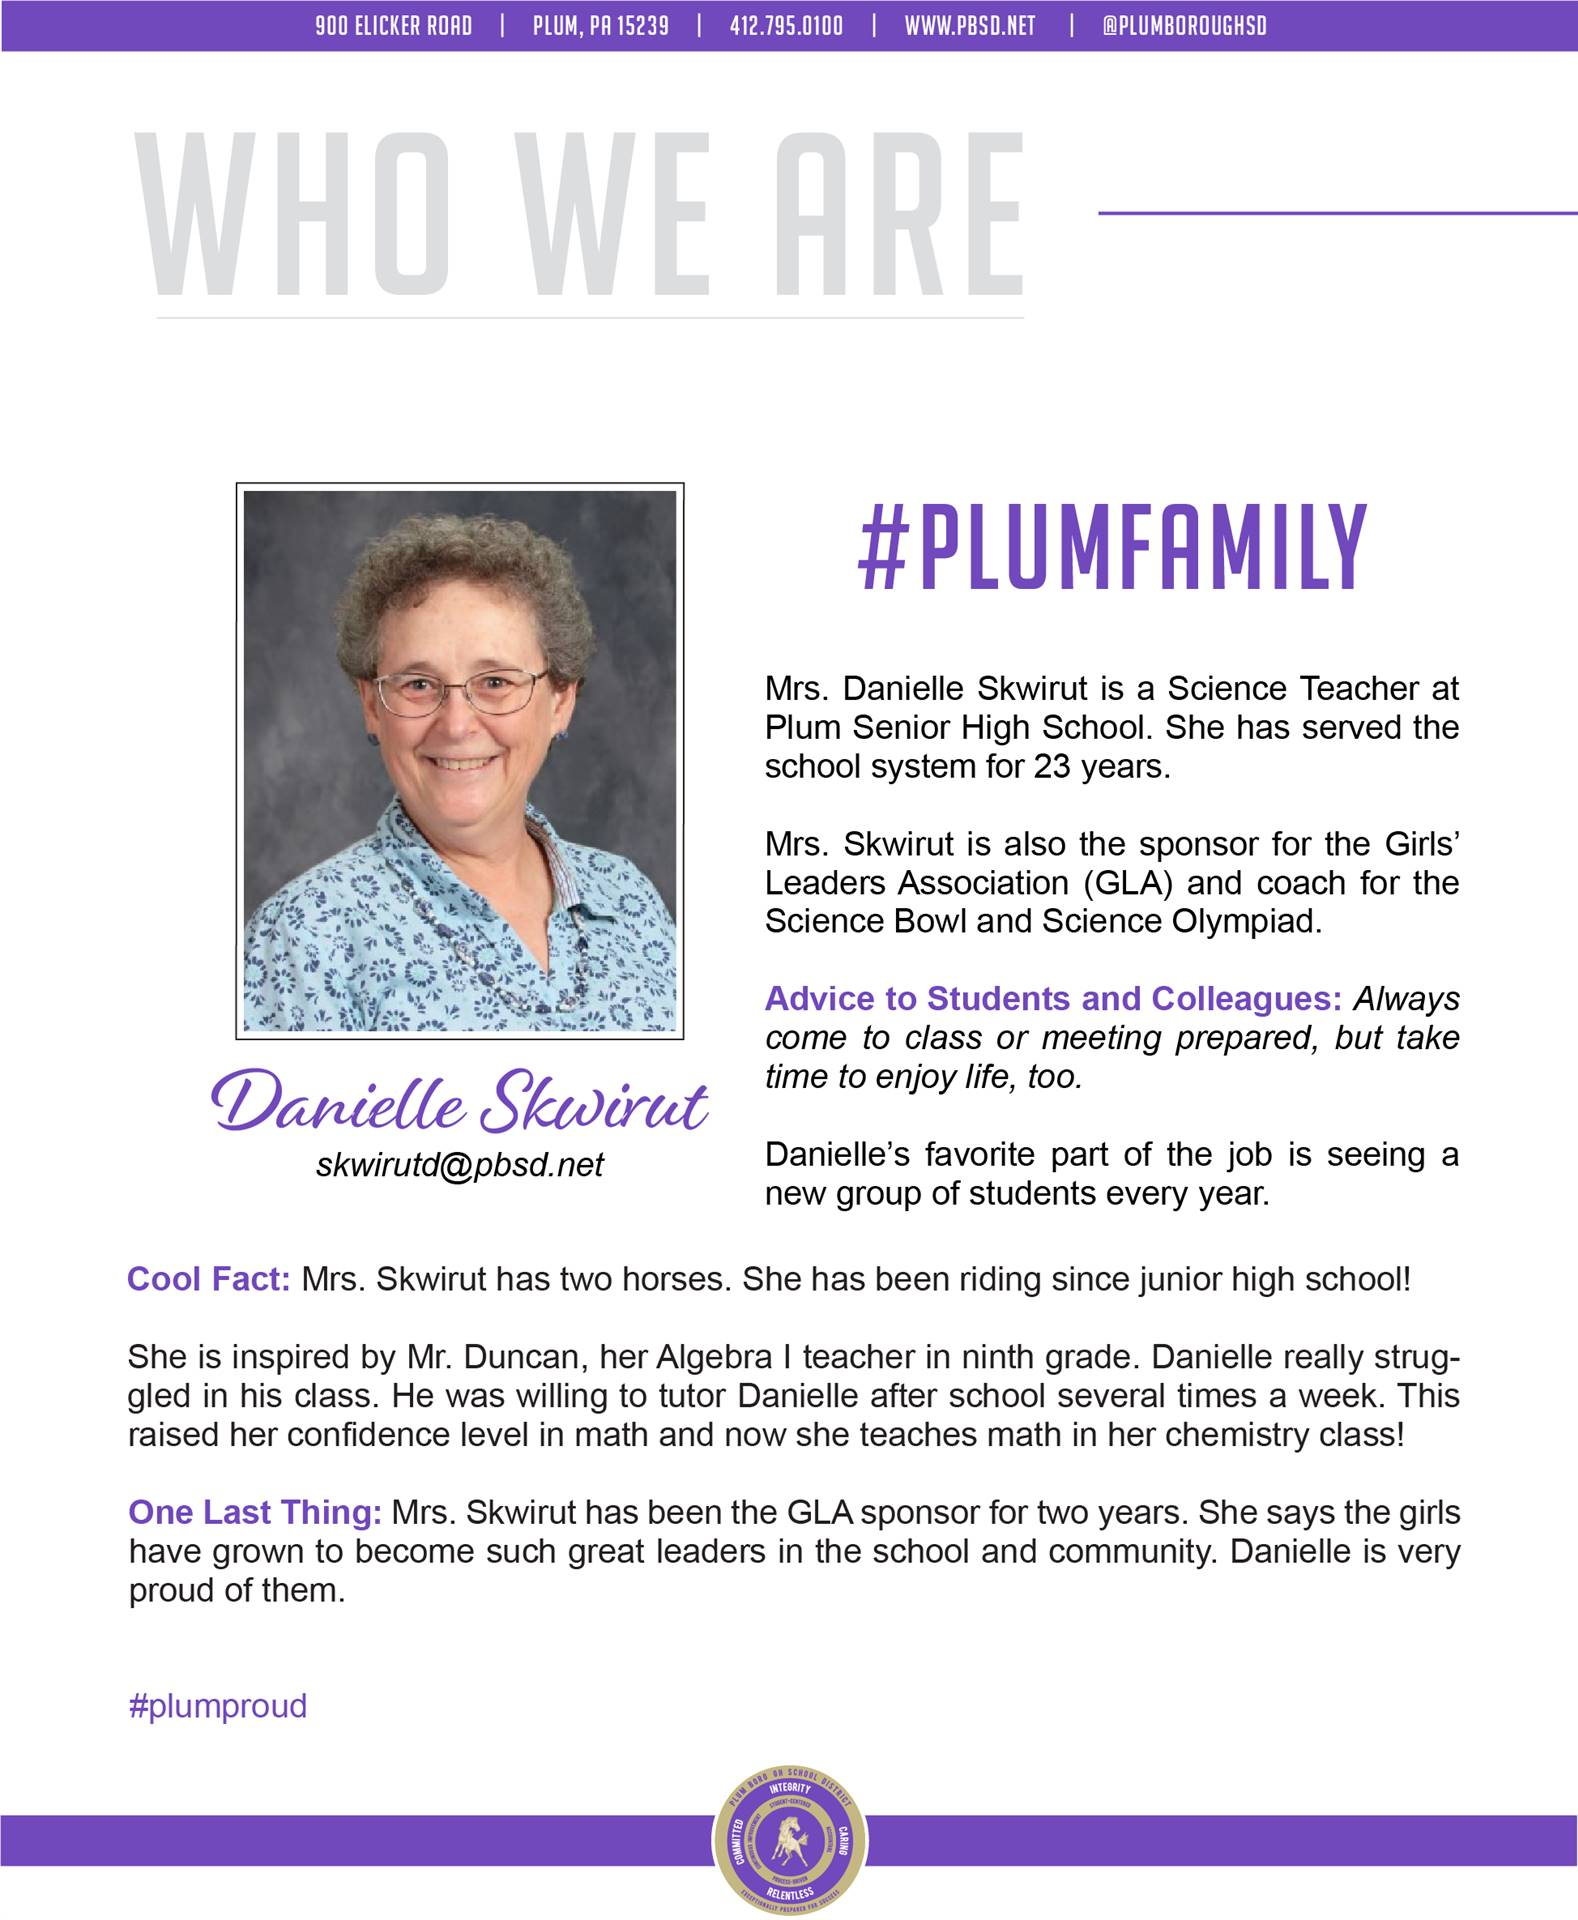 Who We Are Wednesday features Danielle Skwirut.